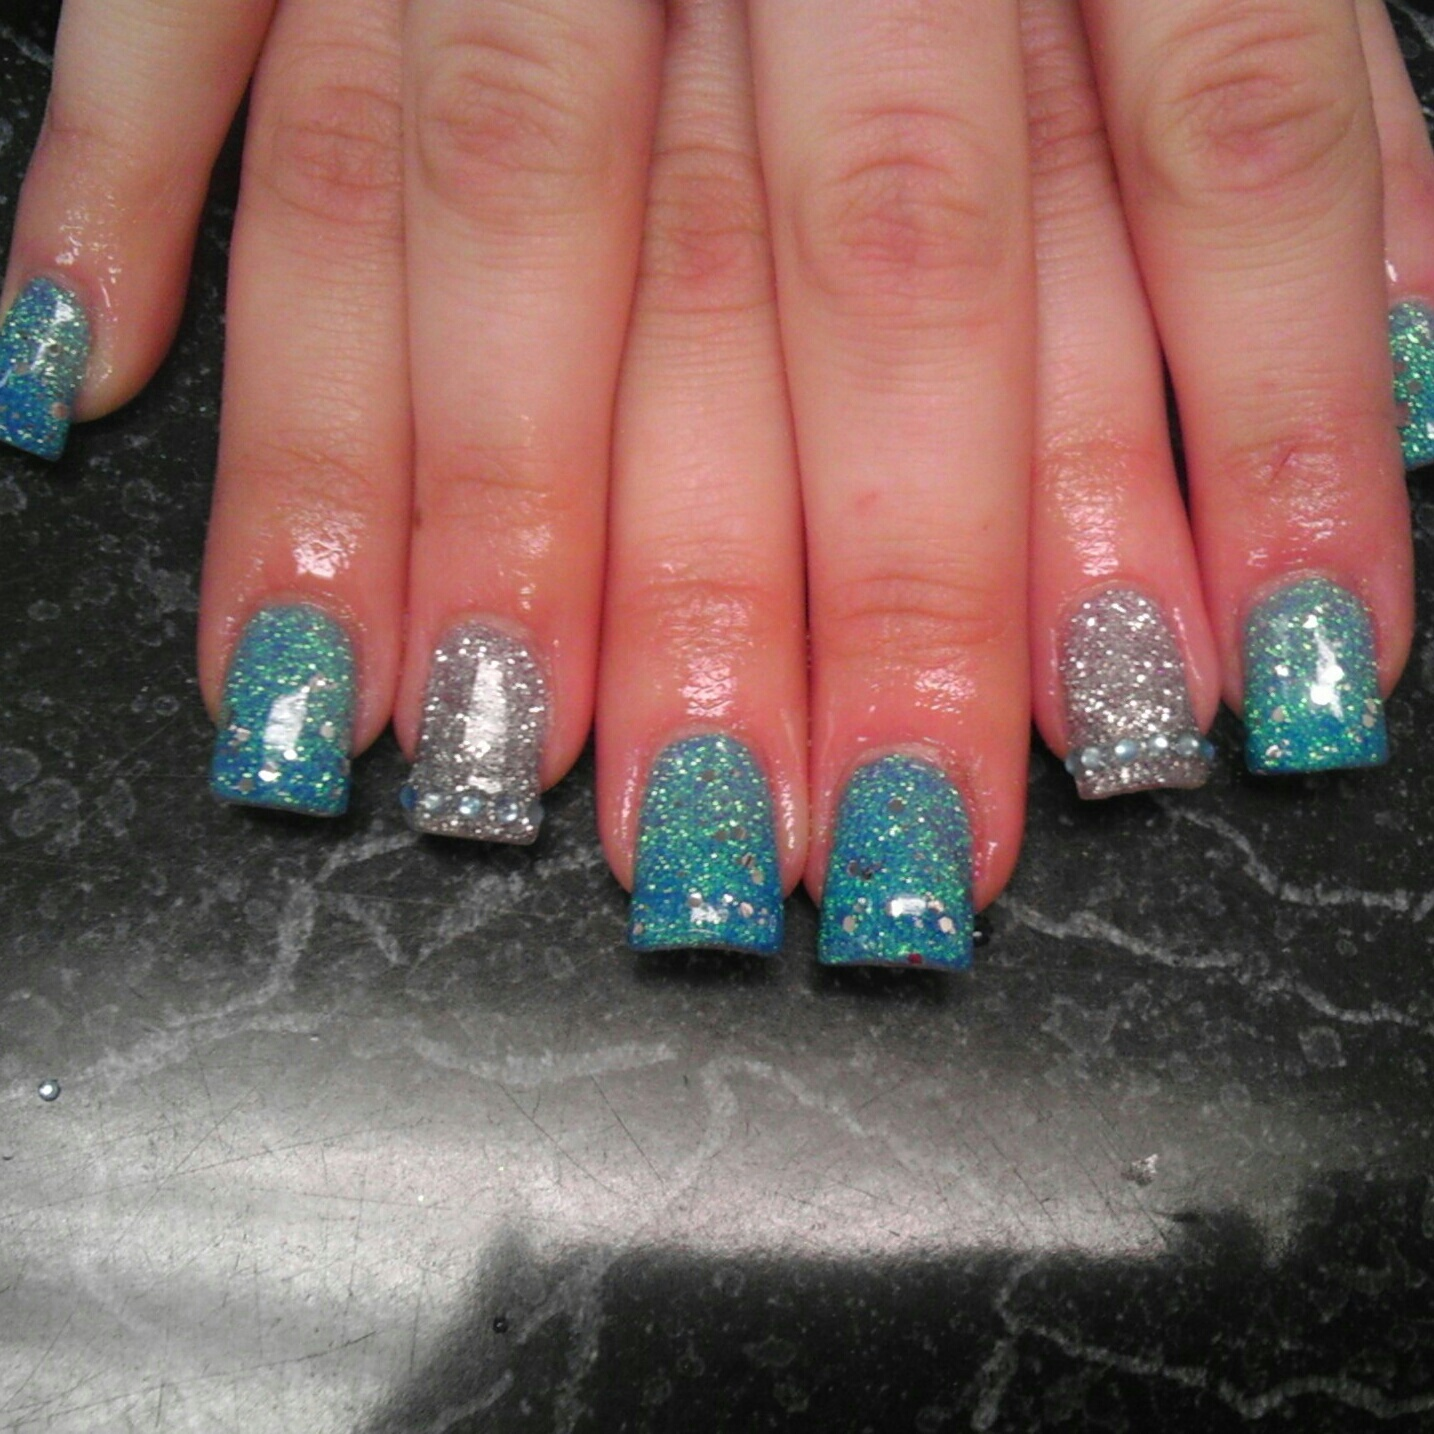 Nails, hair and beauty by Annabelle: Fall/Winter nails